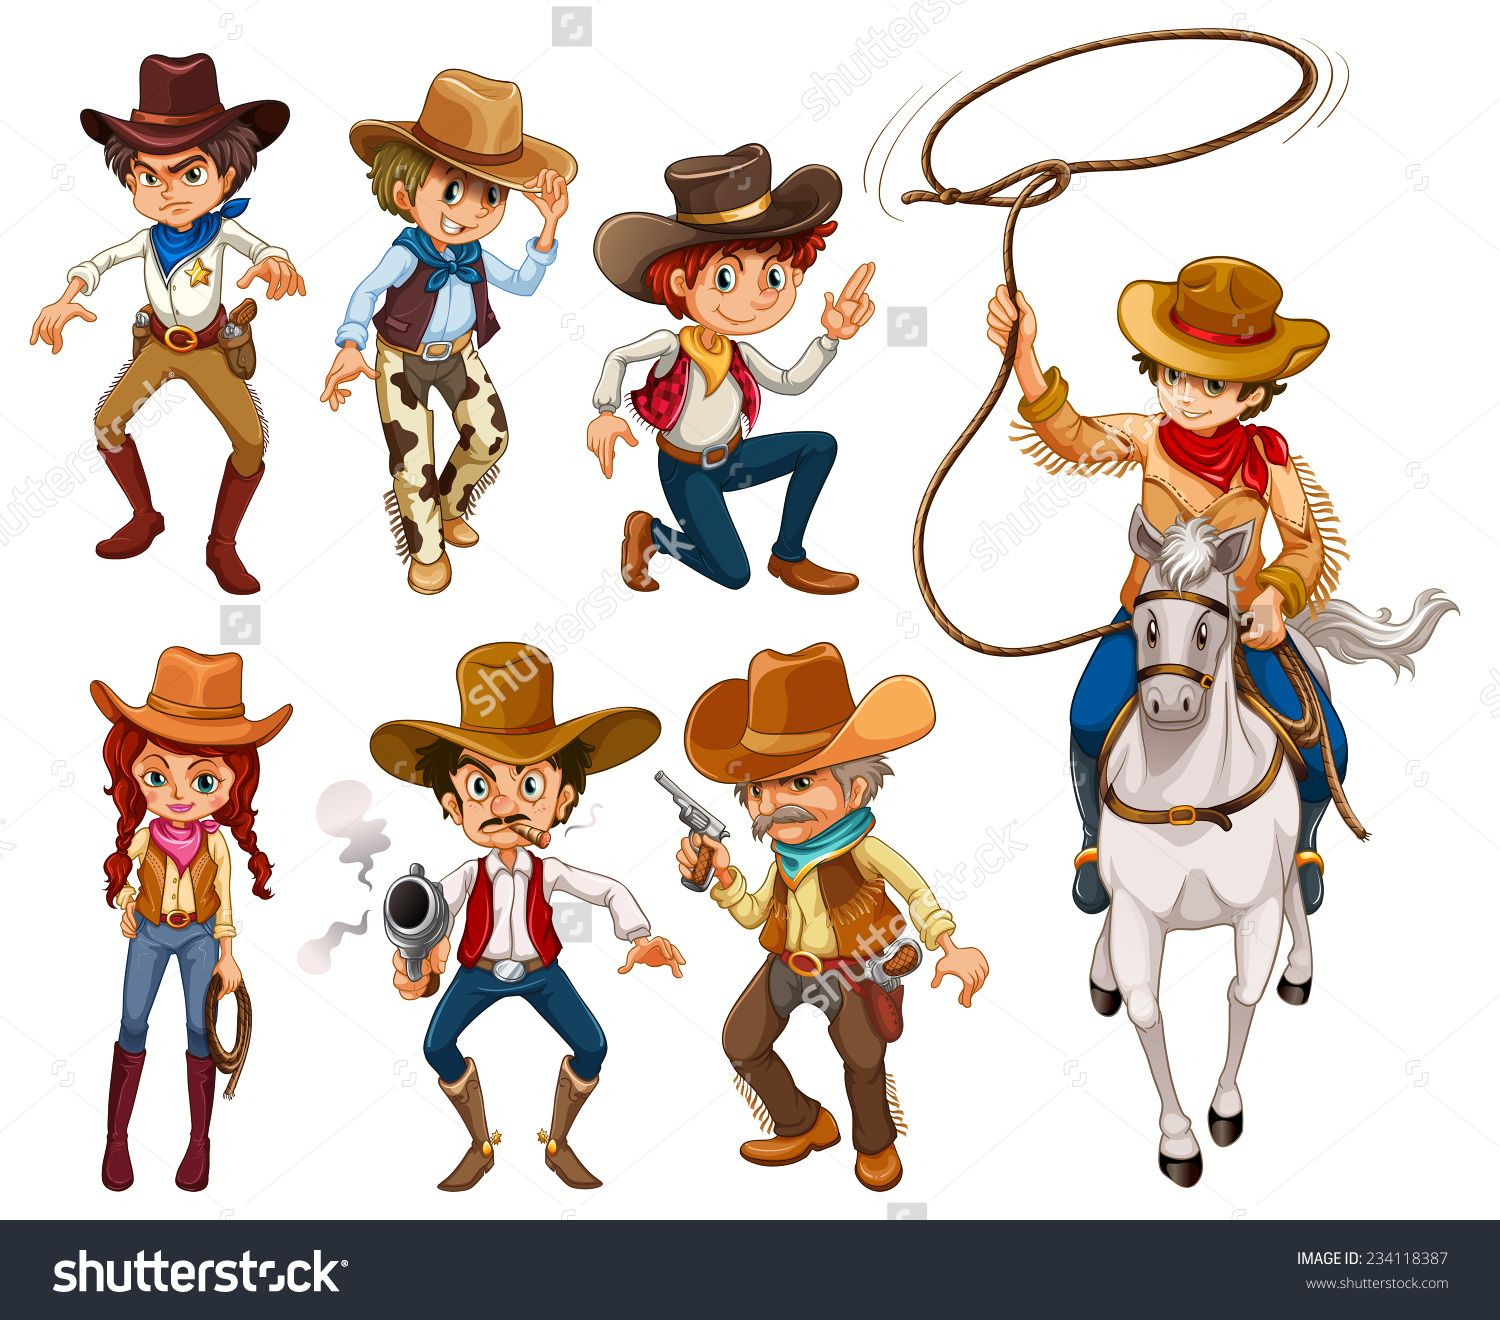 Illustration of different poses of cowboys